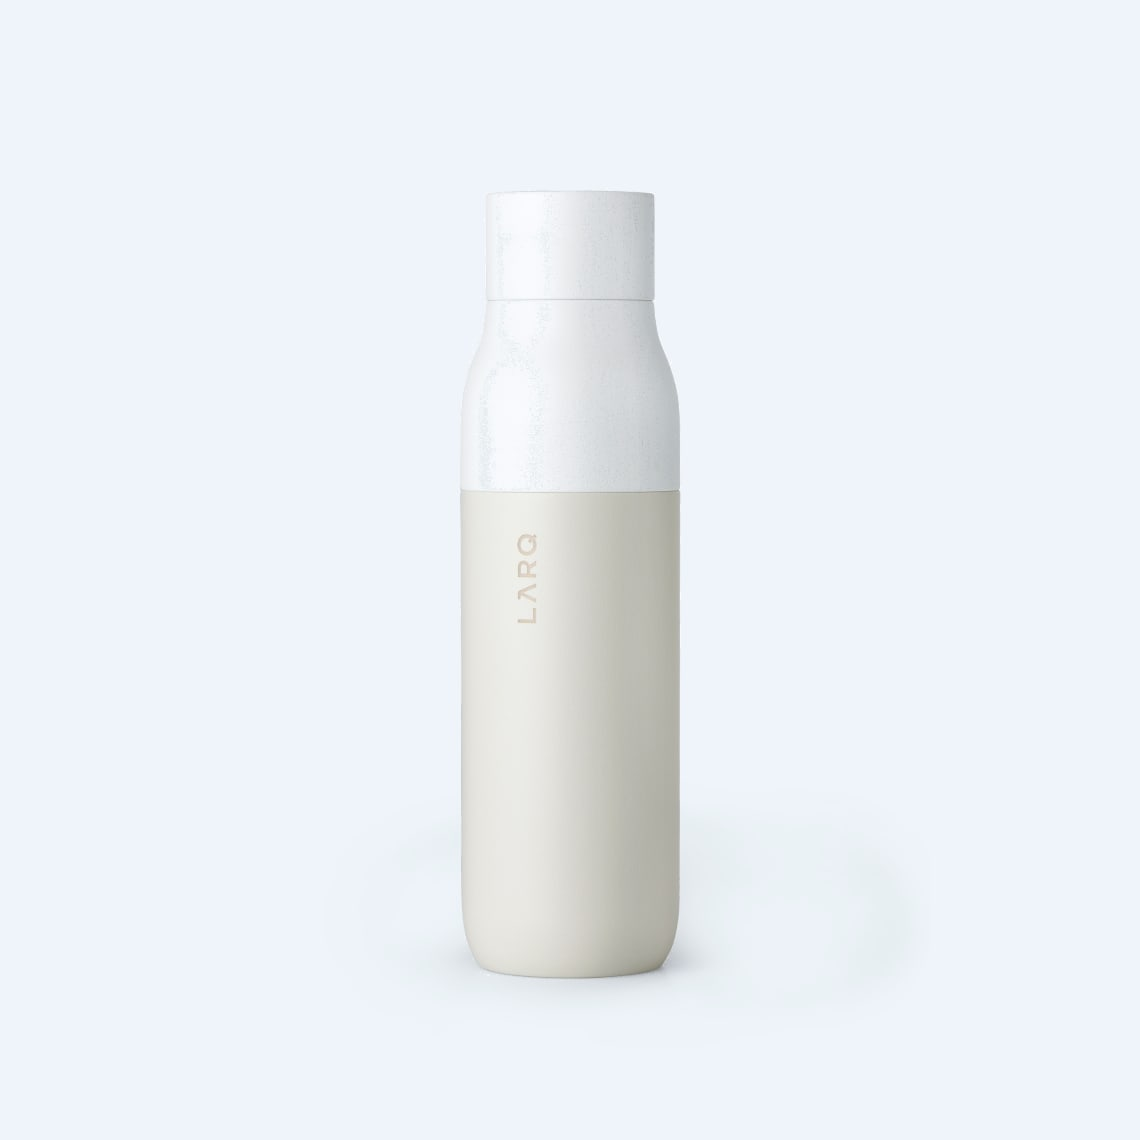 LARQ Bottle PureVis - Granite White